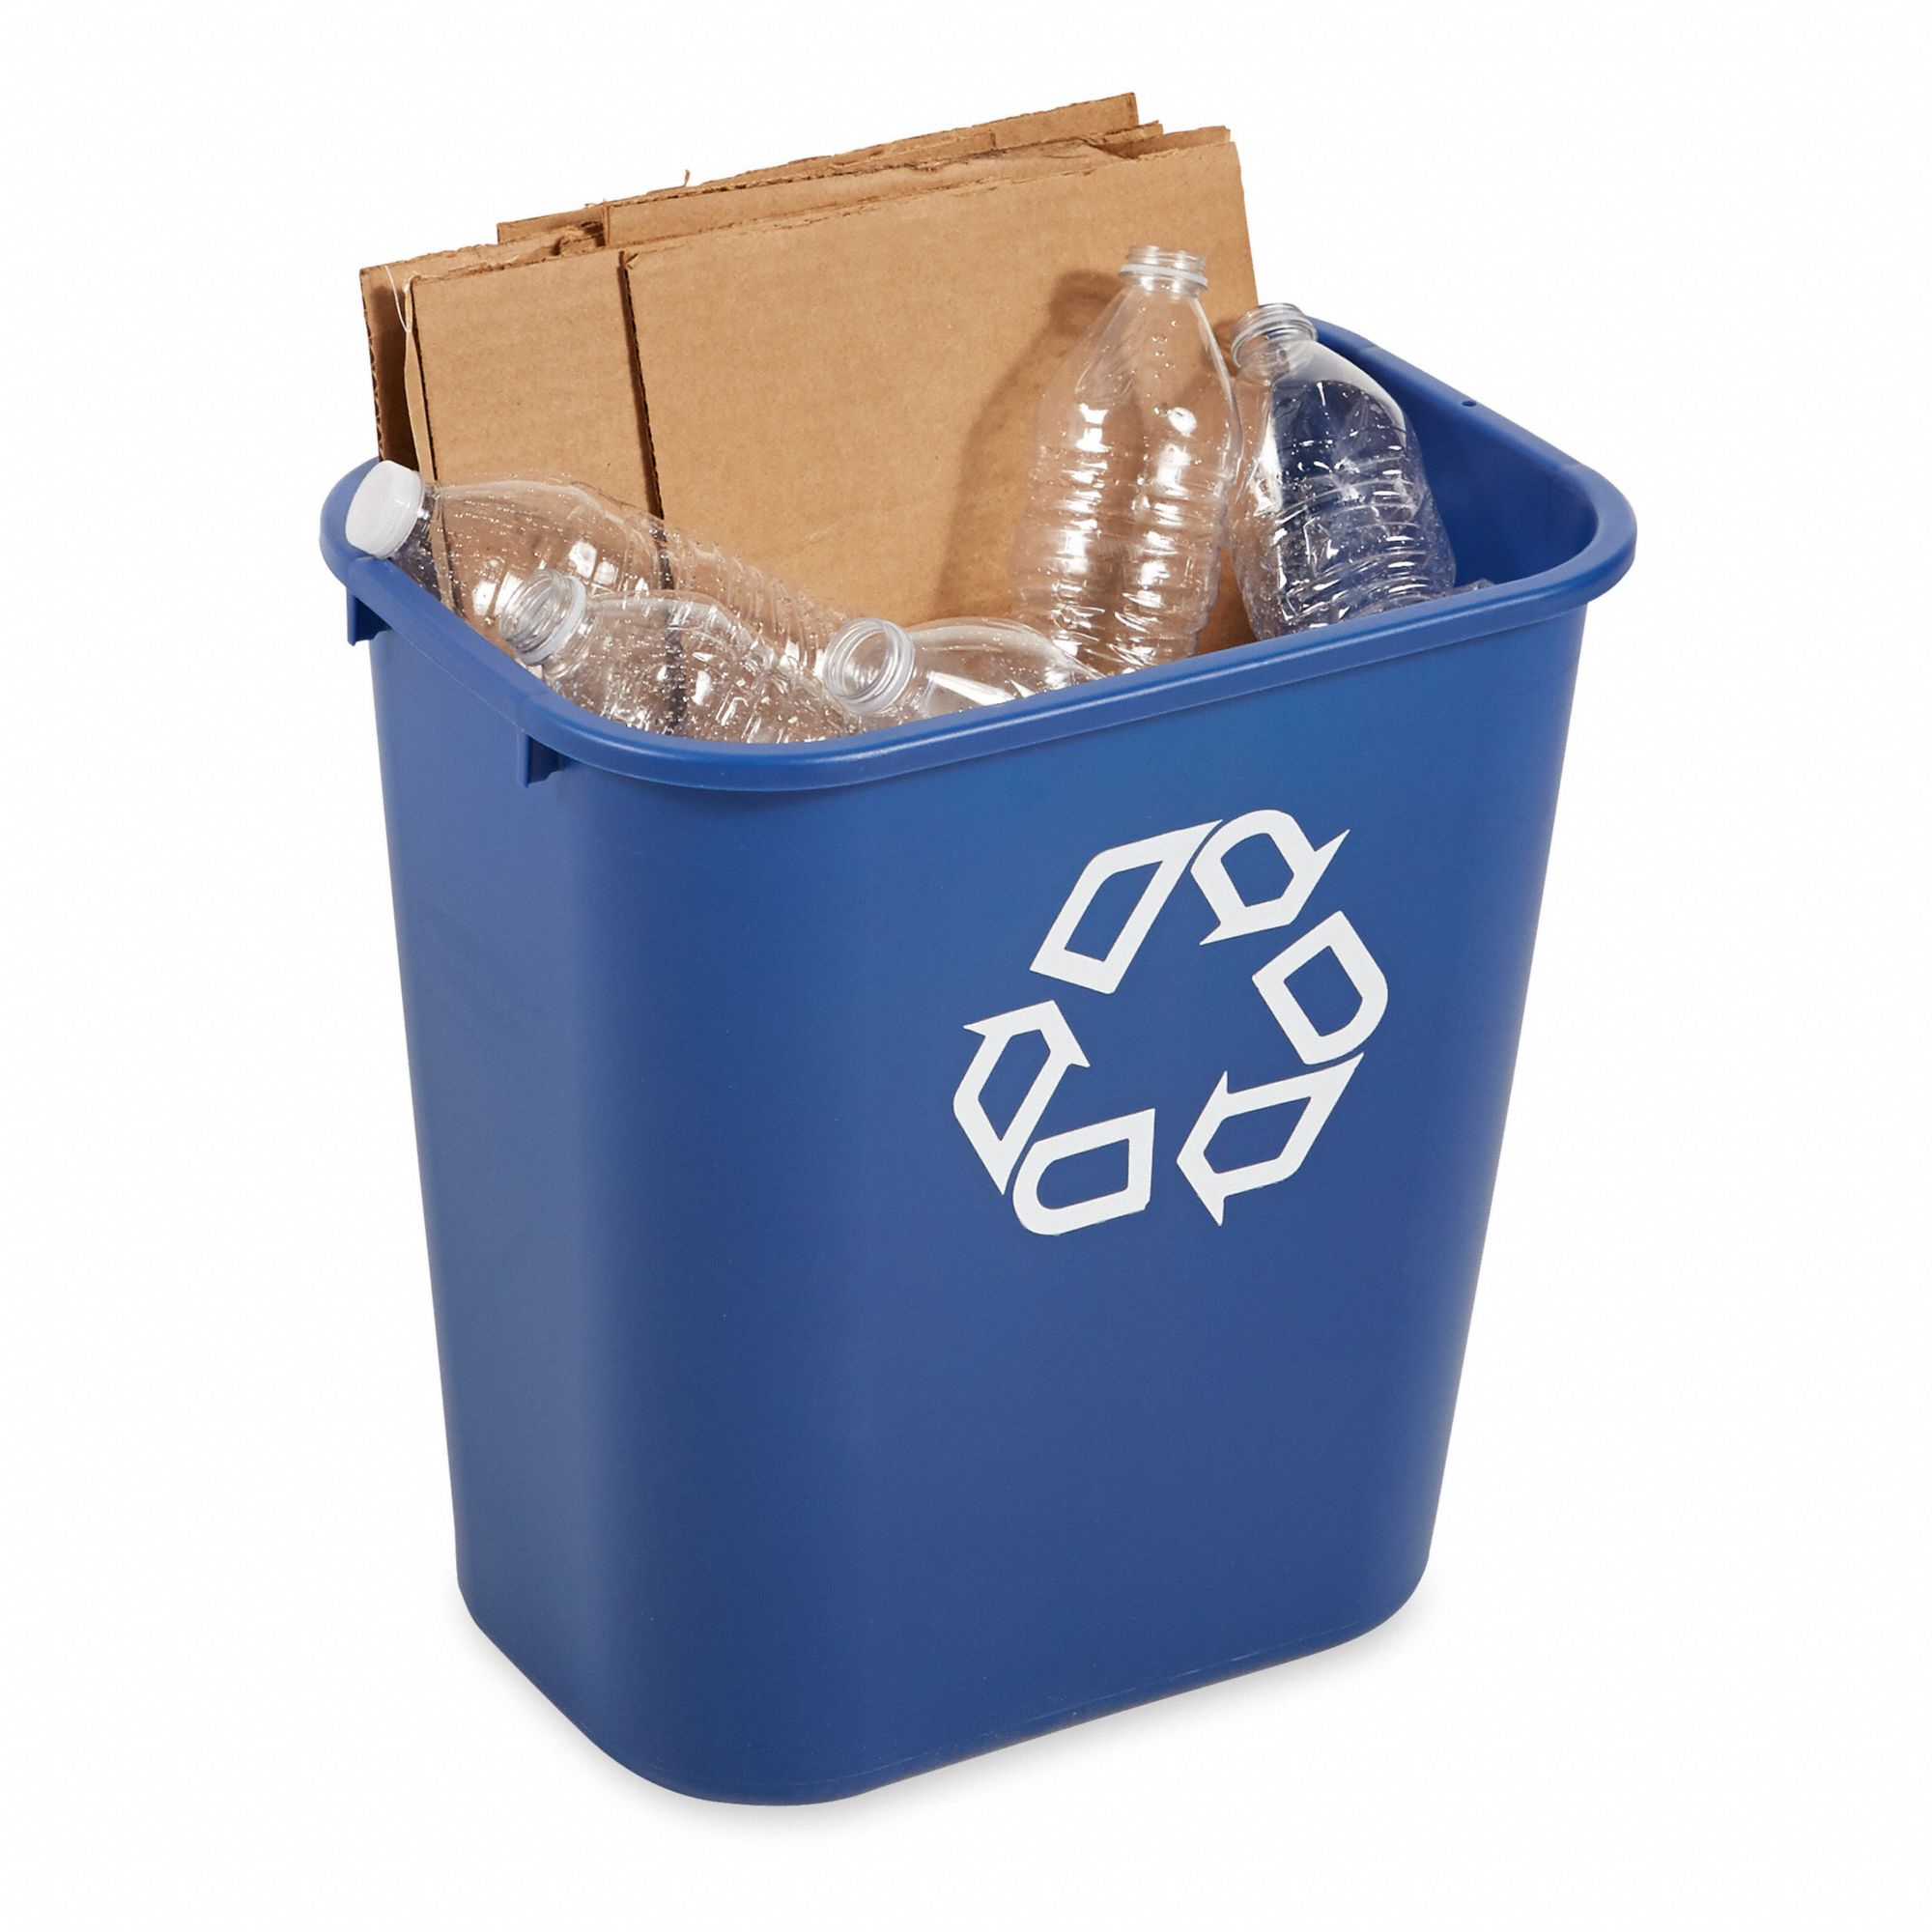 Desk Recycling Container,Blue,7 gal.